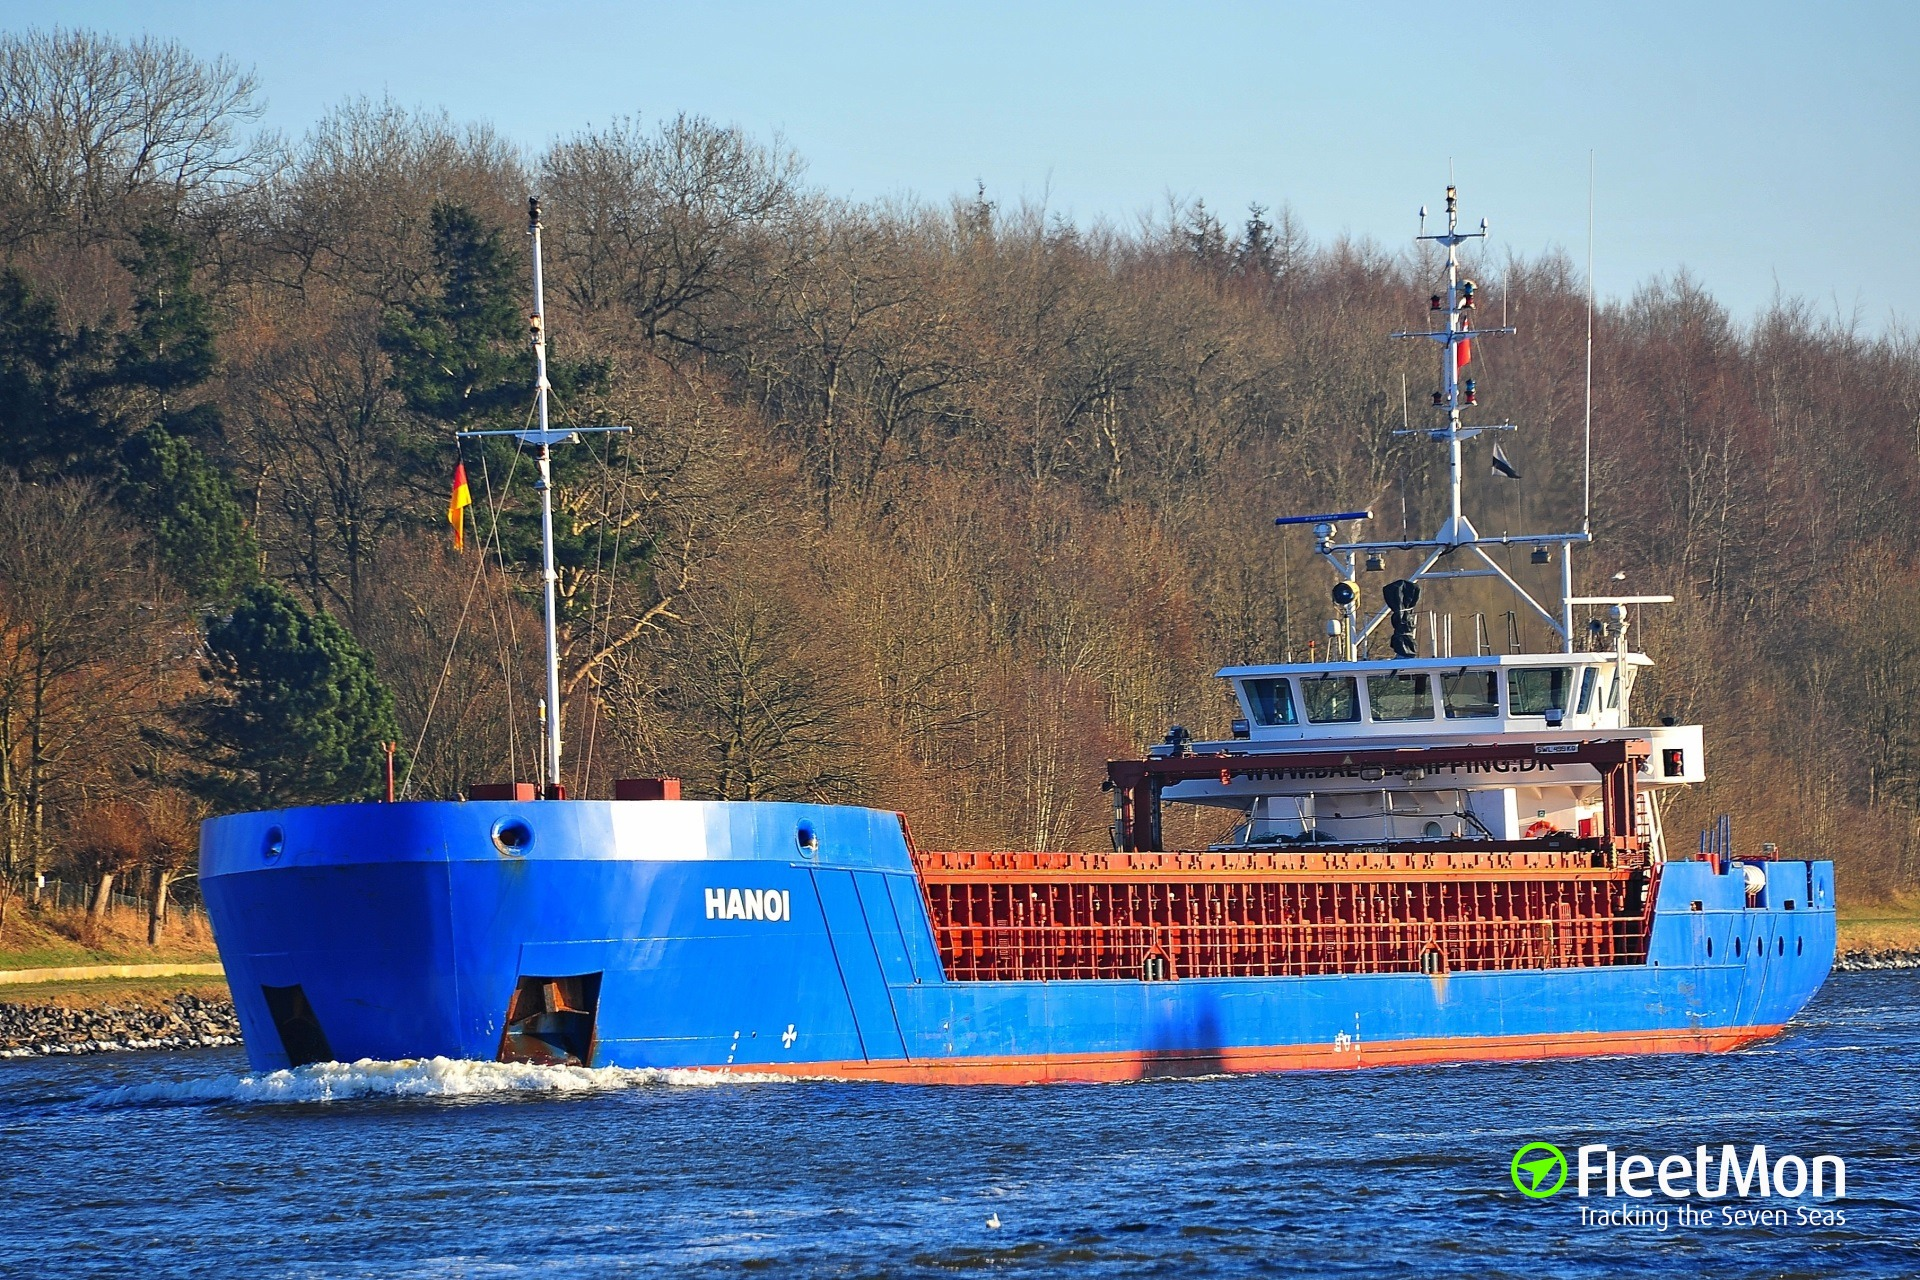 General cargo vessel Hanoi holed in Hamburg